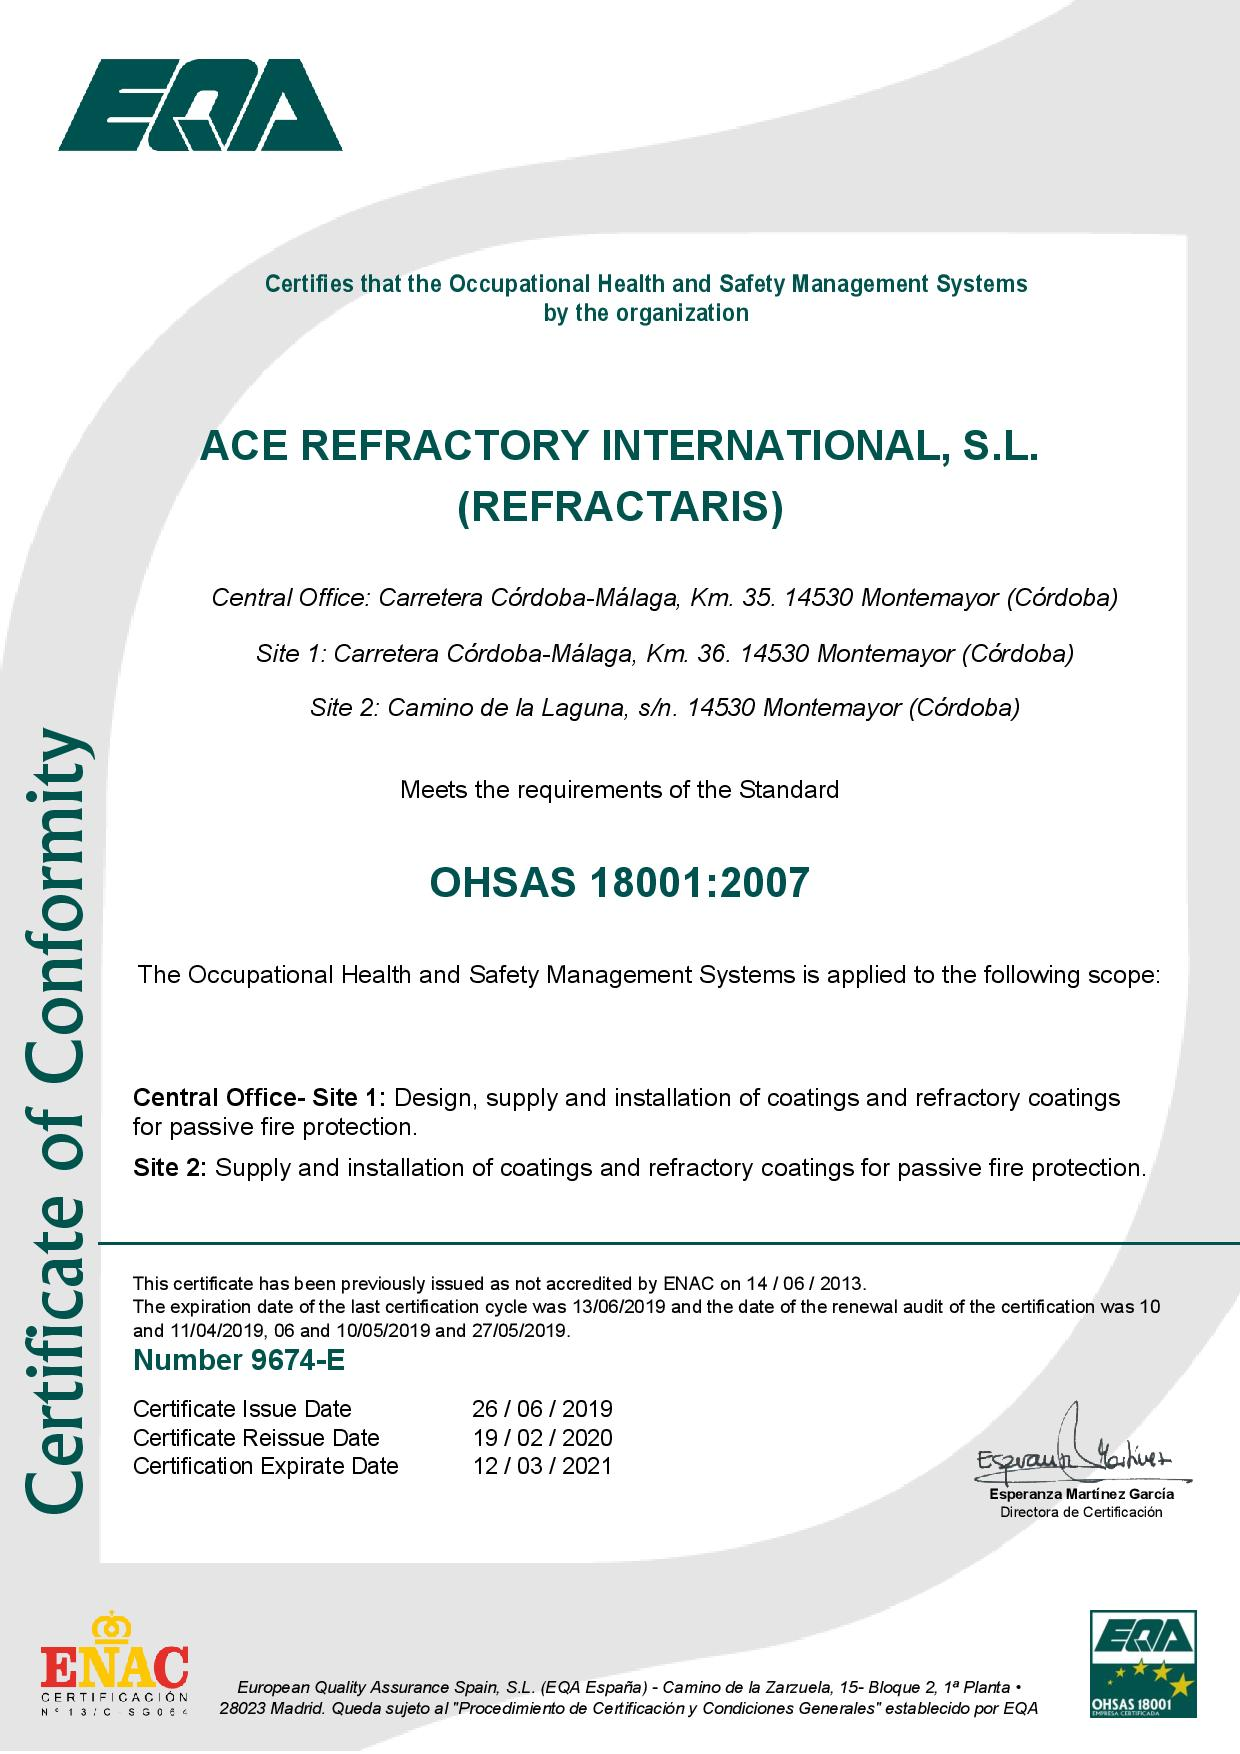 4.9674-E-Ace-Refractory-18001_2007-Ingles-page-001